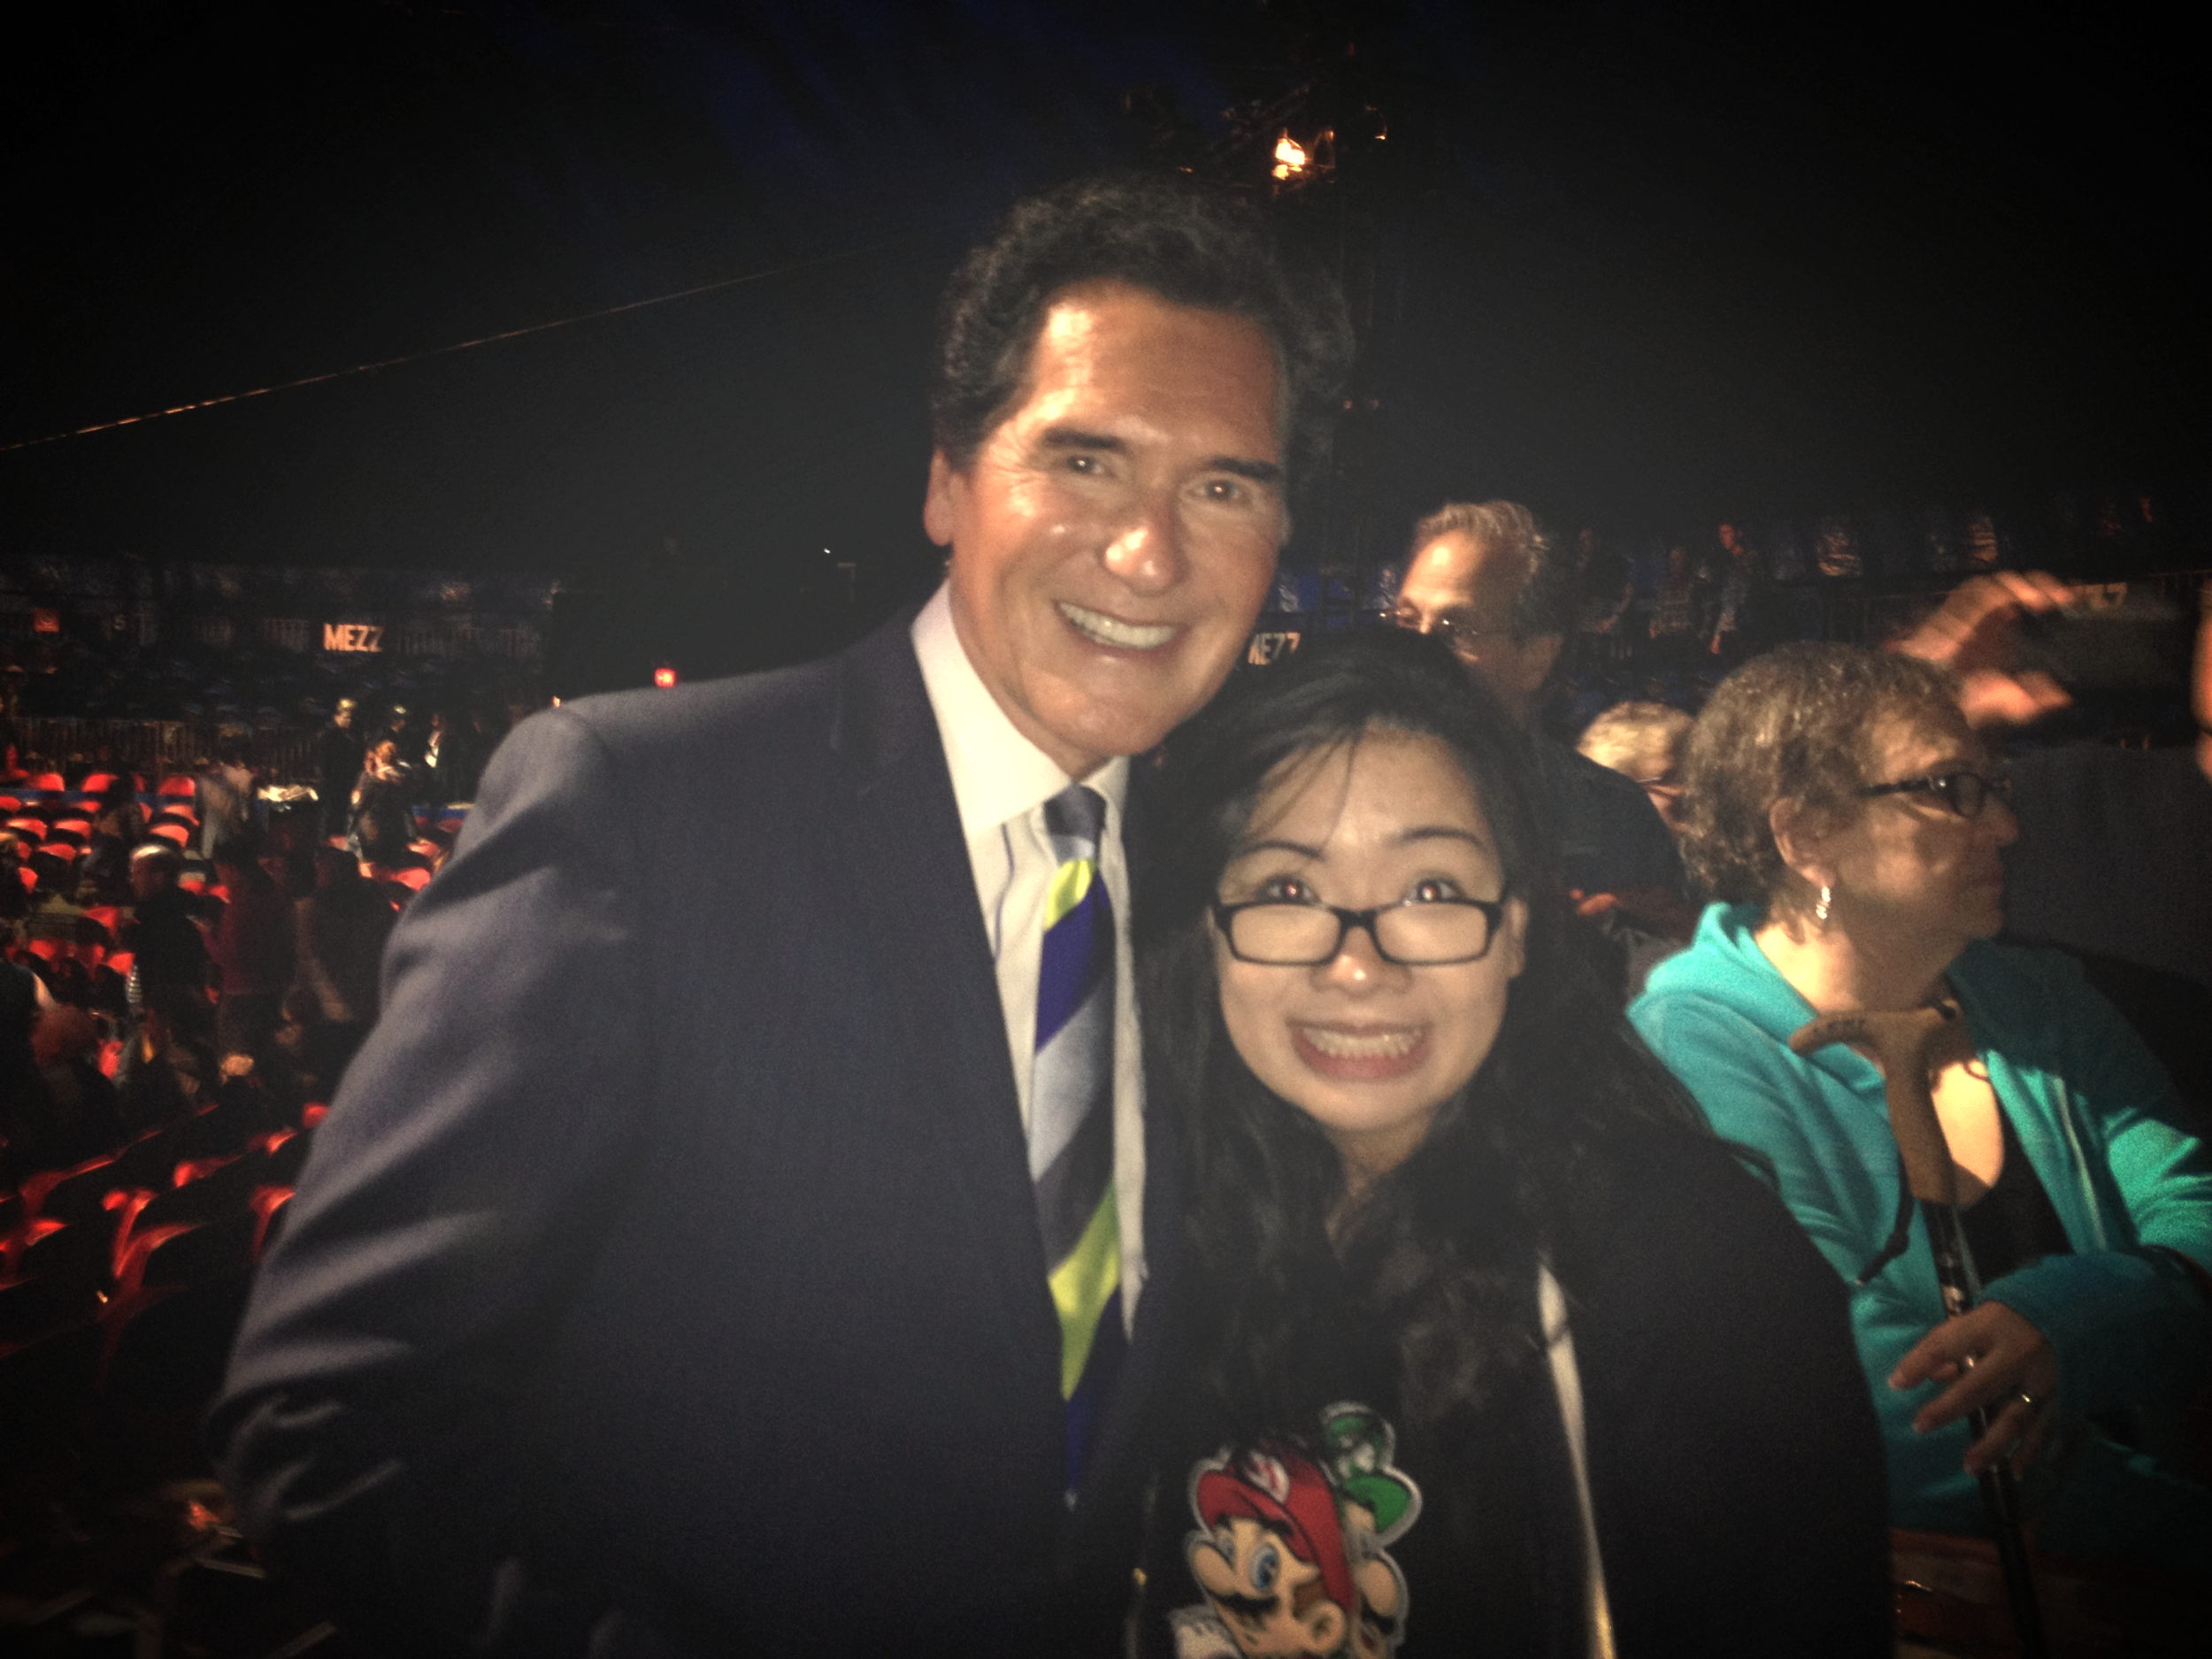 And the cheesin' only continued when I met Ernie Anastos.